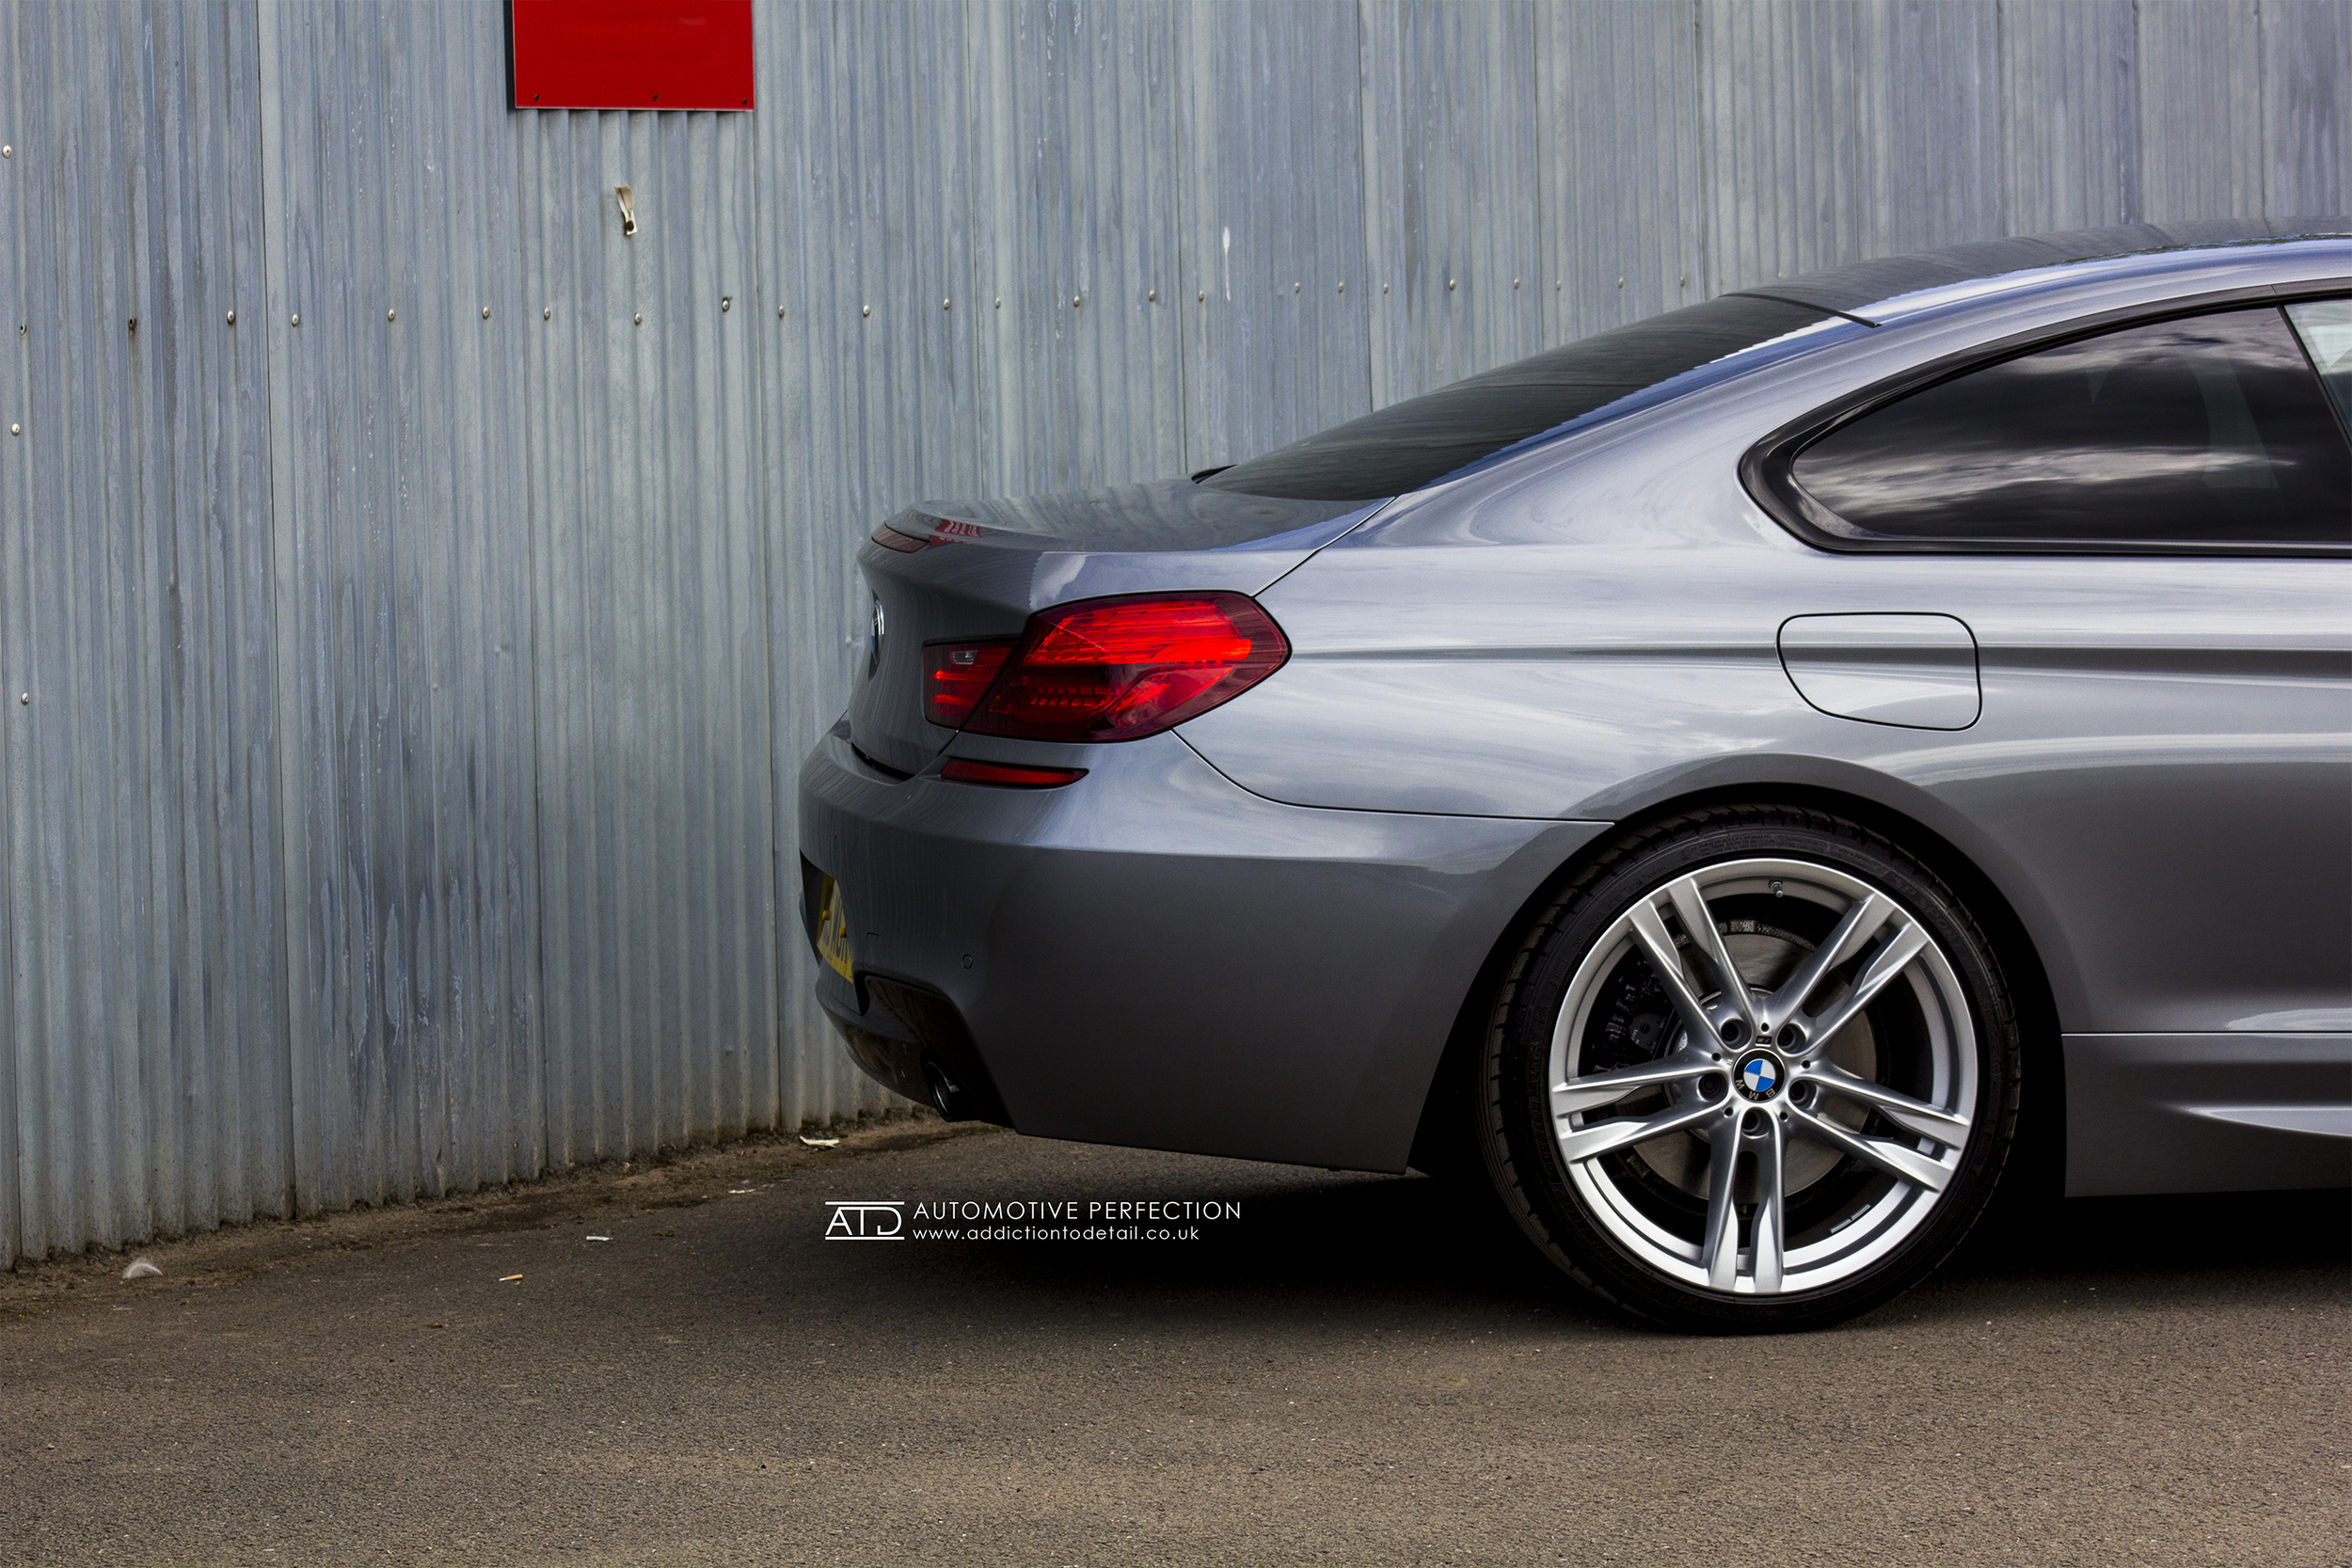 640D_Coupe_Photoshoot__0000_Image_034.jpg